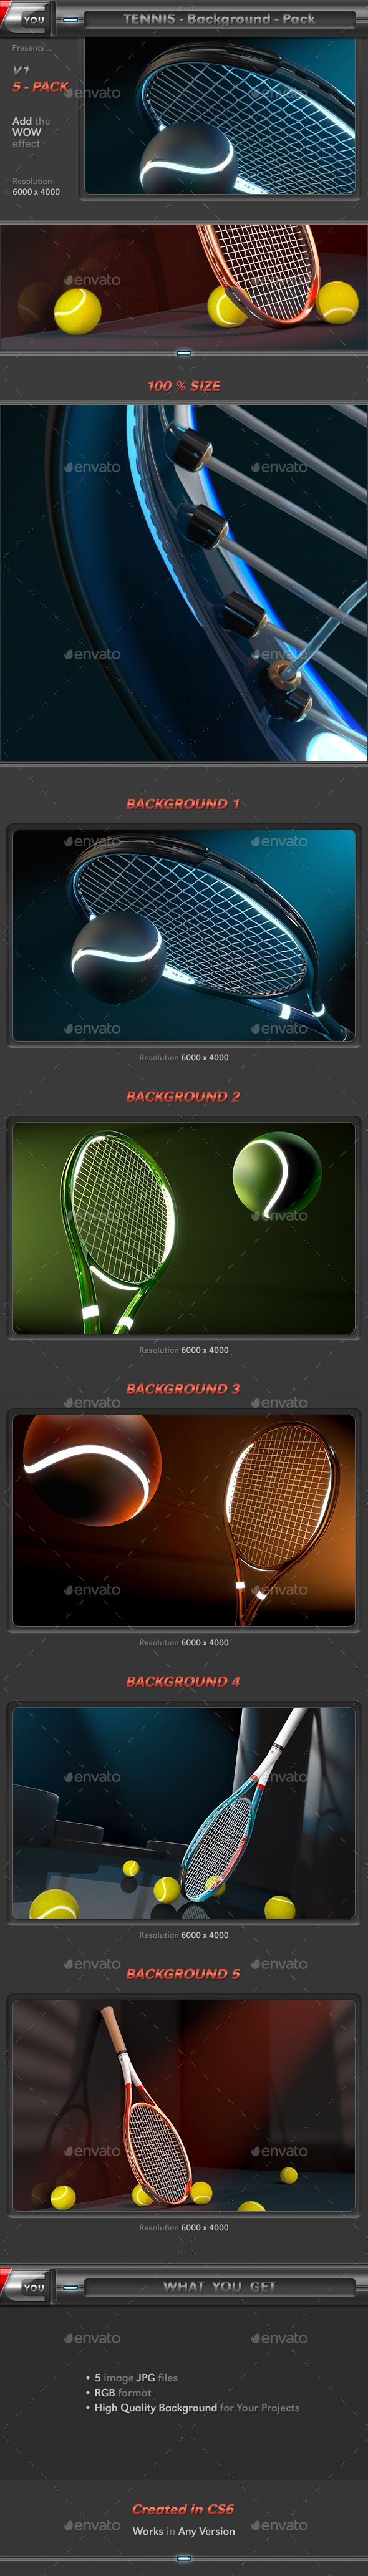 Tennis Background Pack - 3D Backgrounds